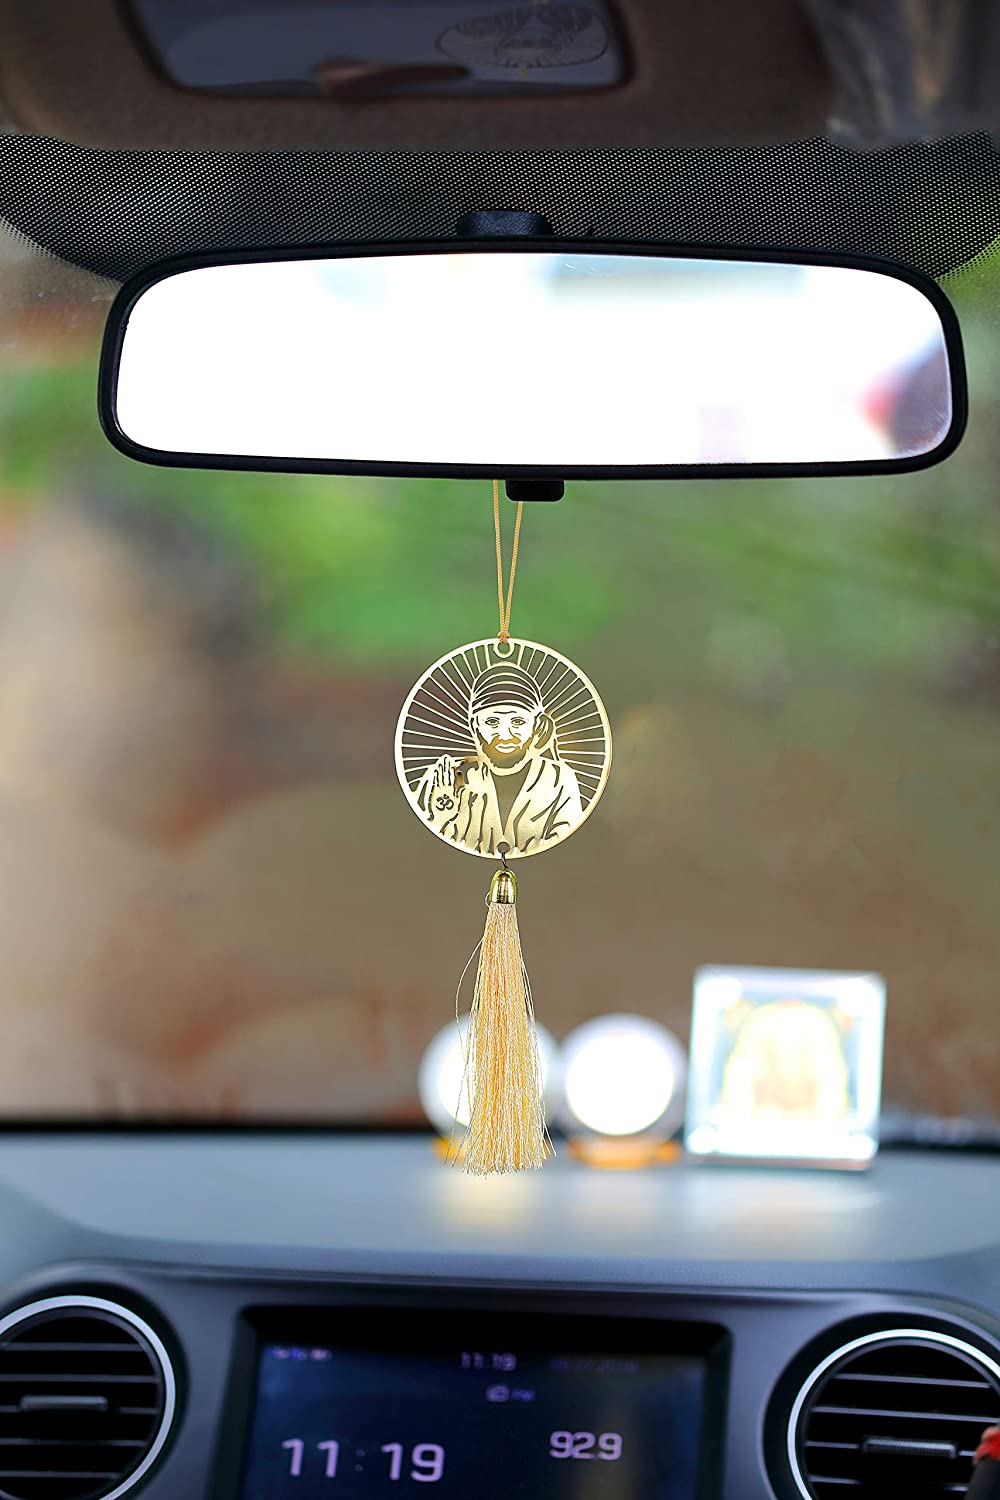 Rear View Mirror Car Hanging Ornament//Perfect Car Charm Pendant//Amulet Accessories for Car D/écor in Brass for Divine Blessings /& Safety//Protection ADORAA Shirdi Sai Baba//Om Sai Ram